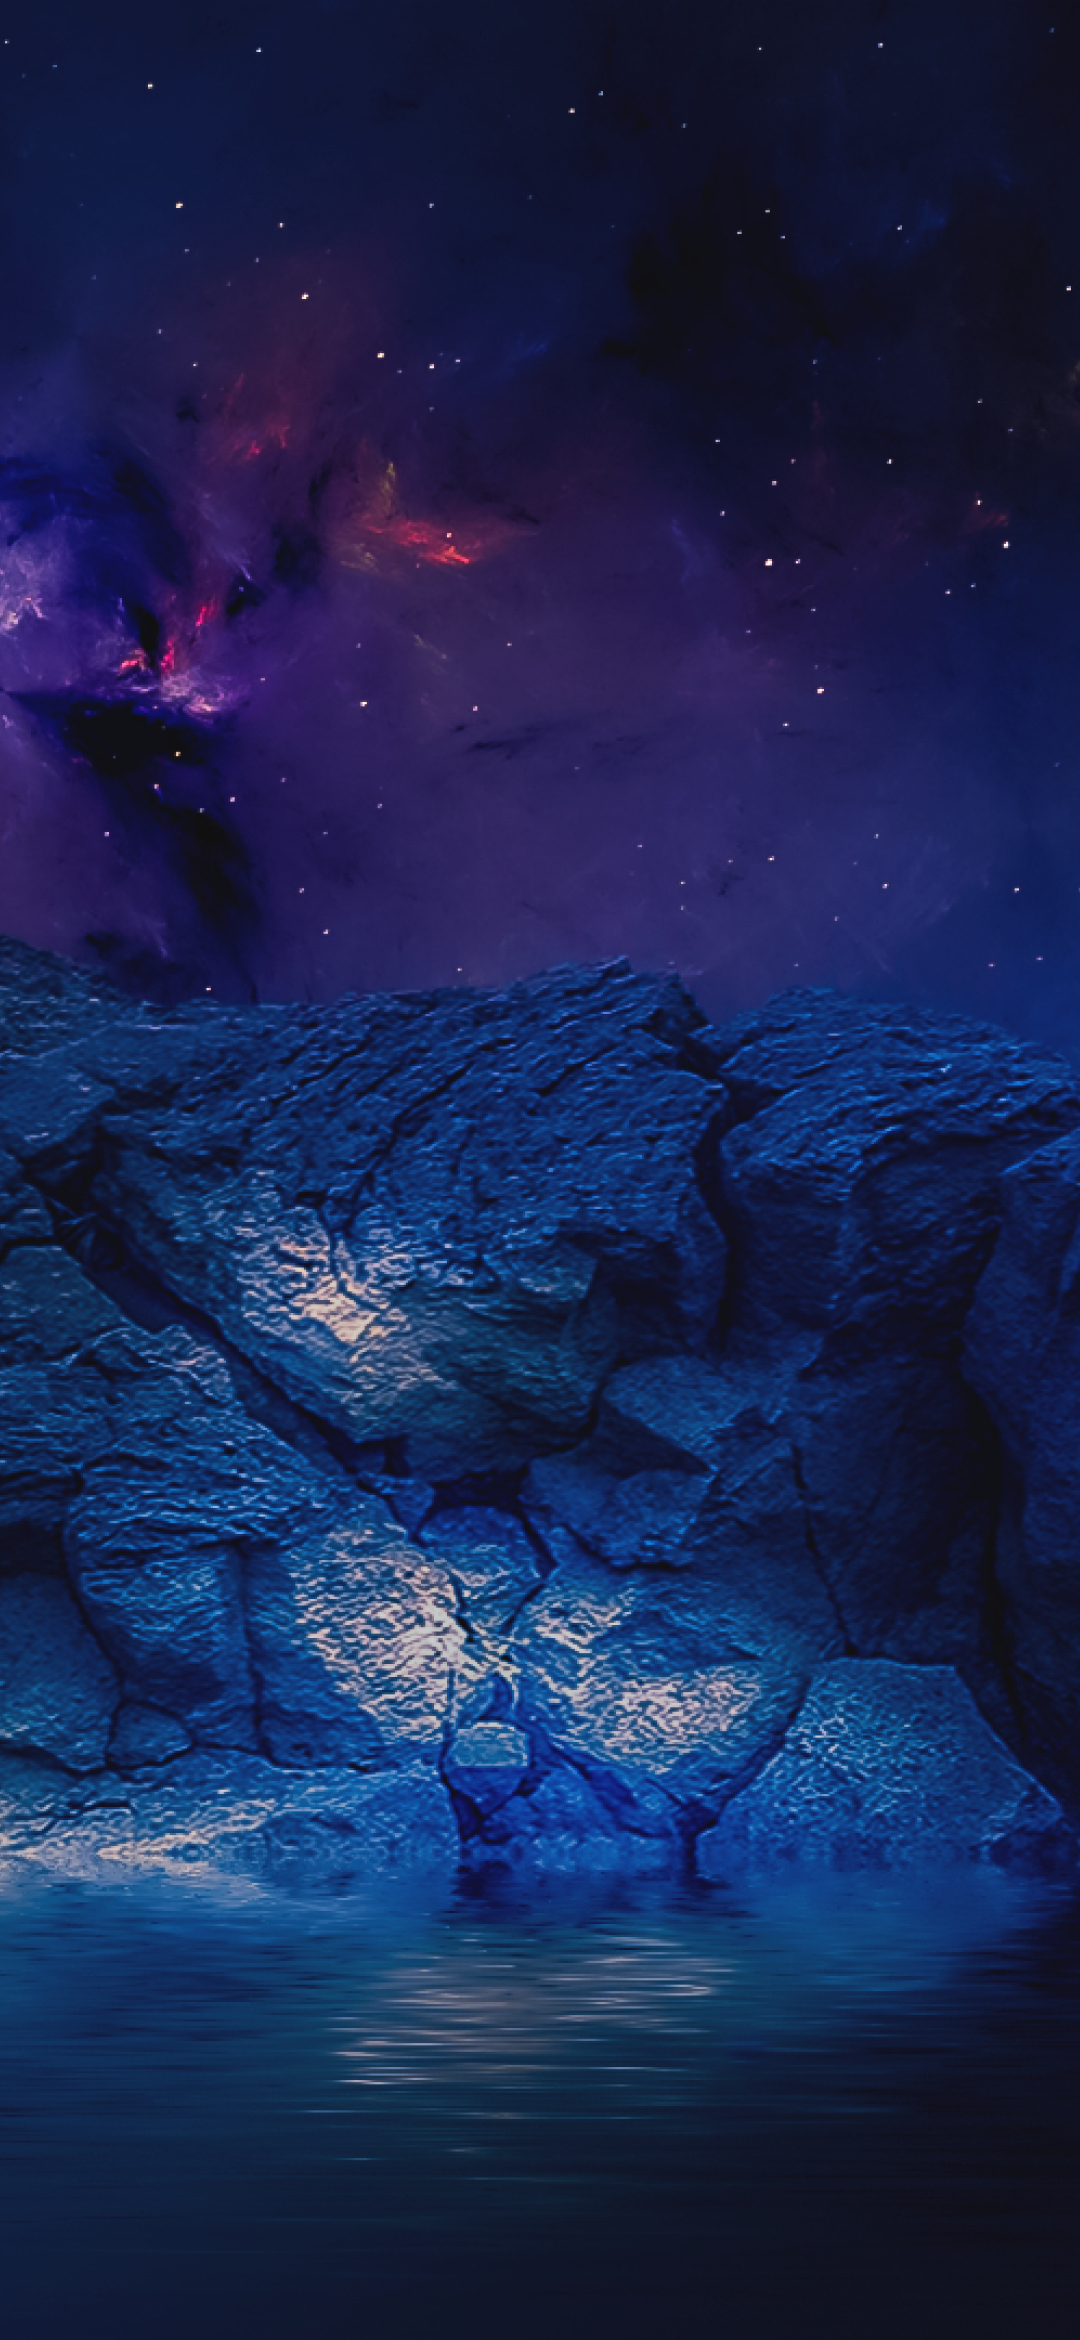 1080x2340 Android Wallpapers - Wallpaper Cave